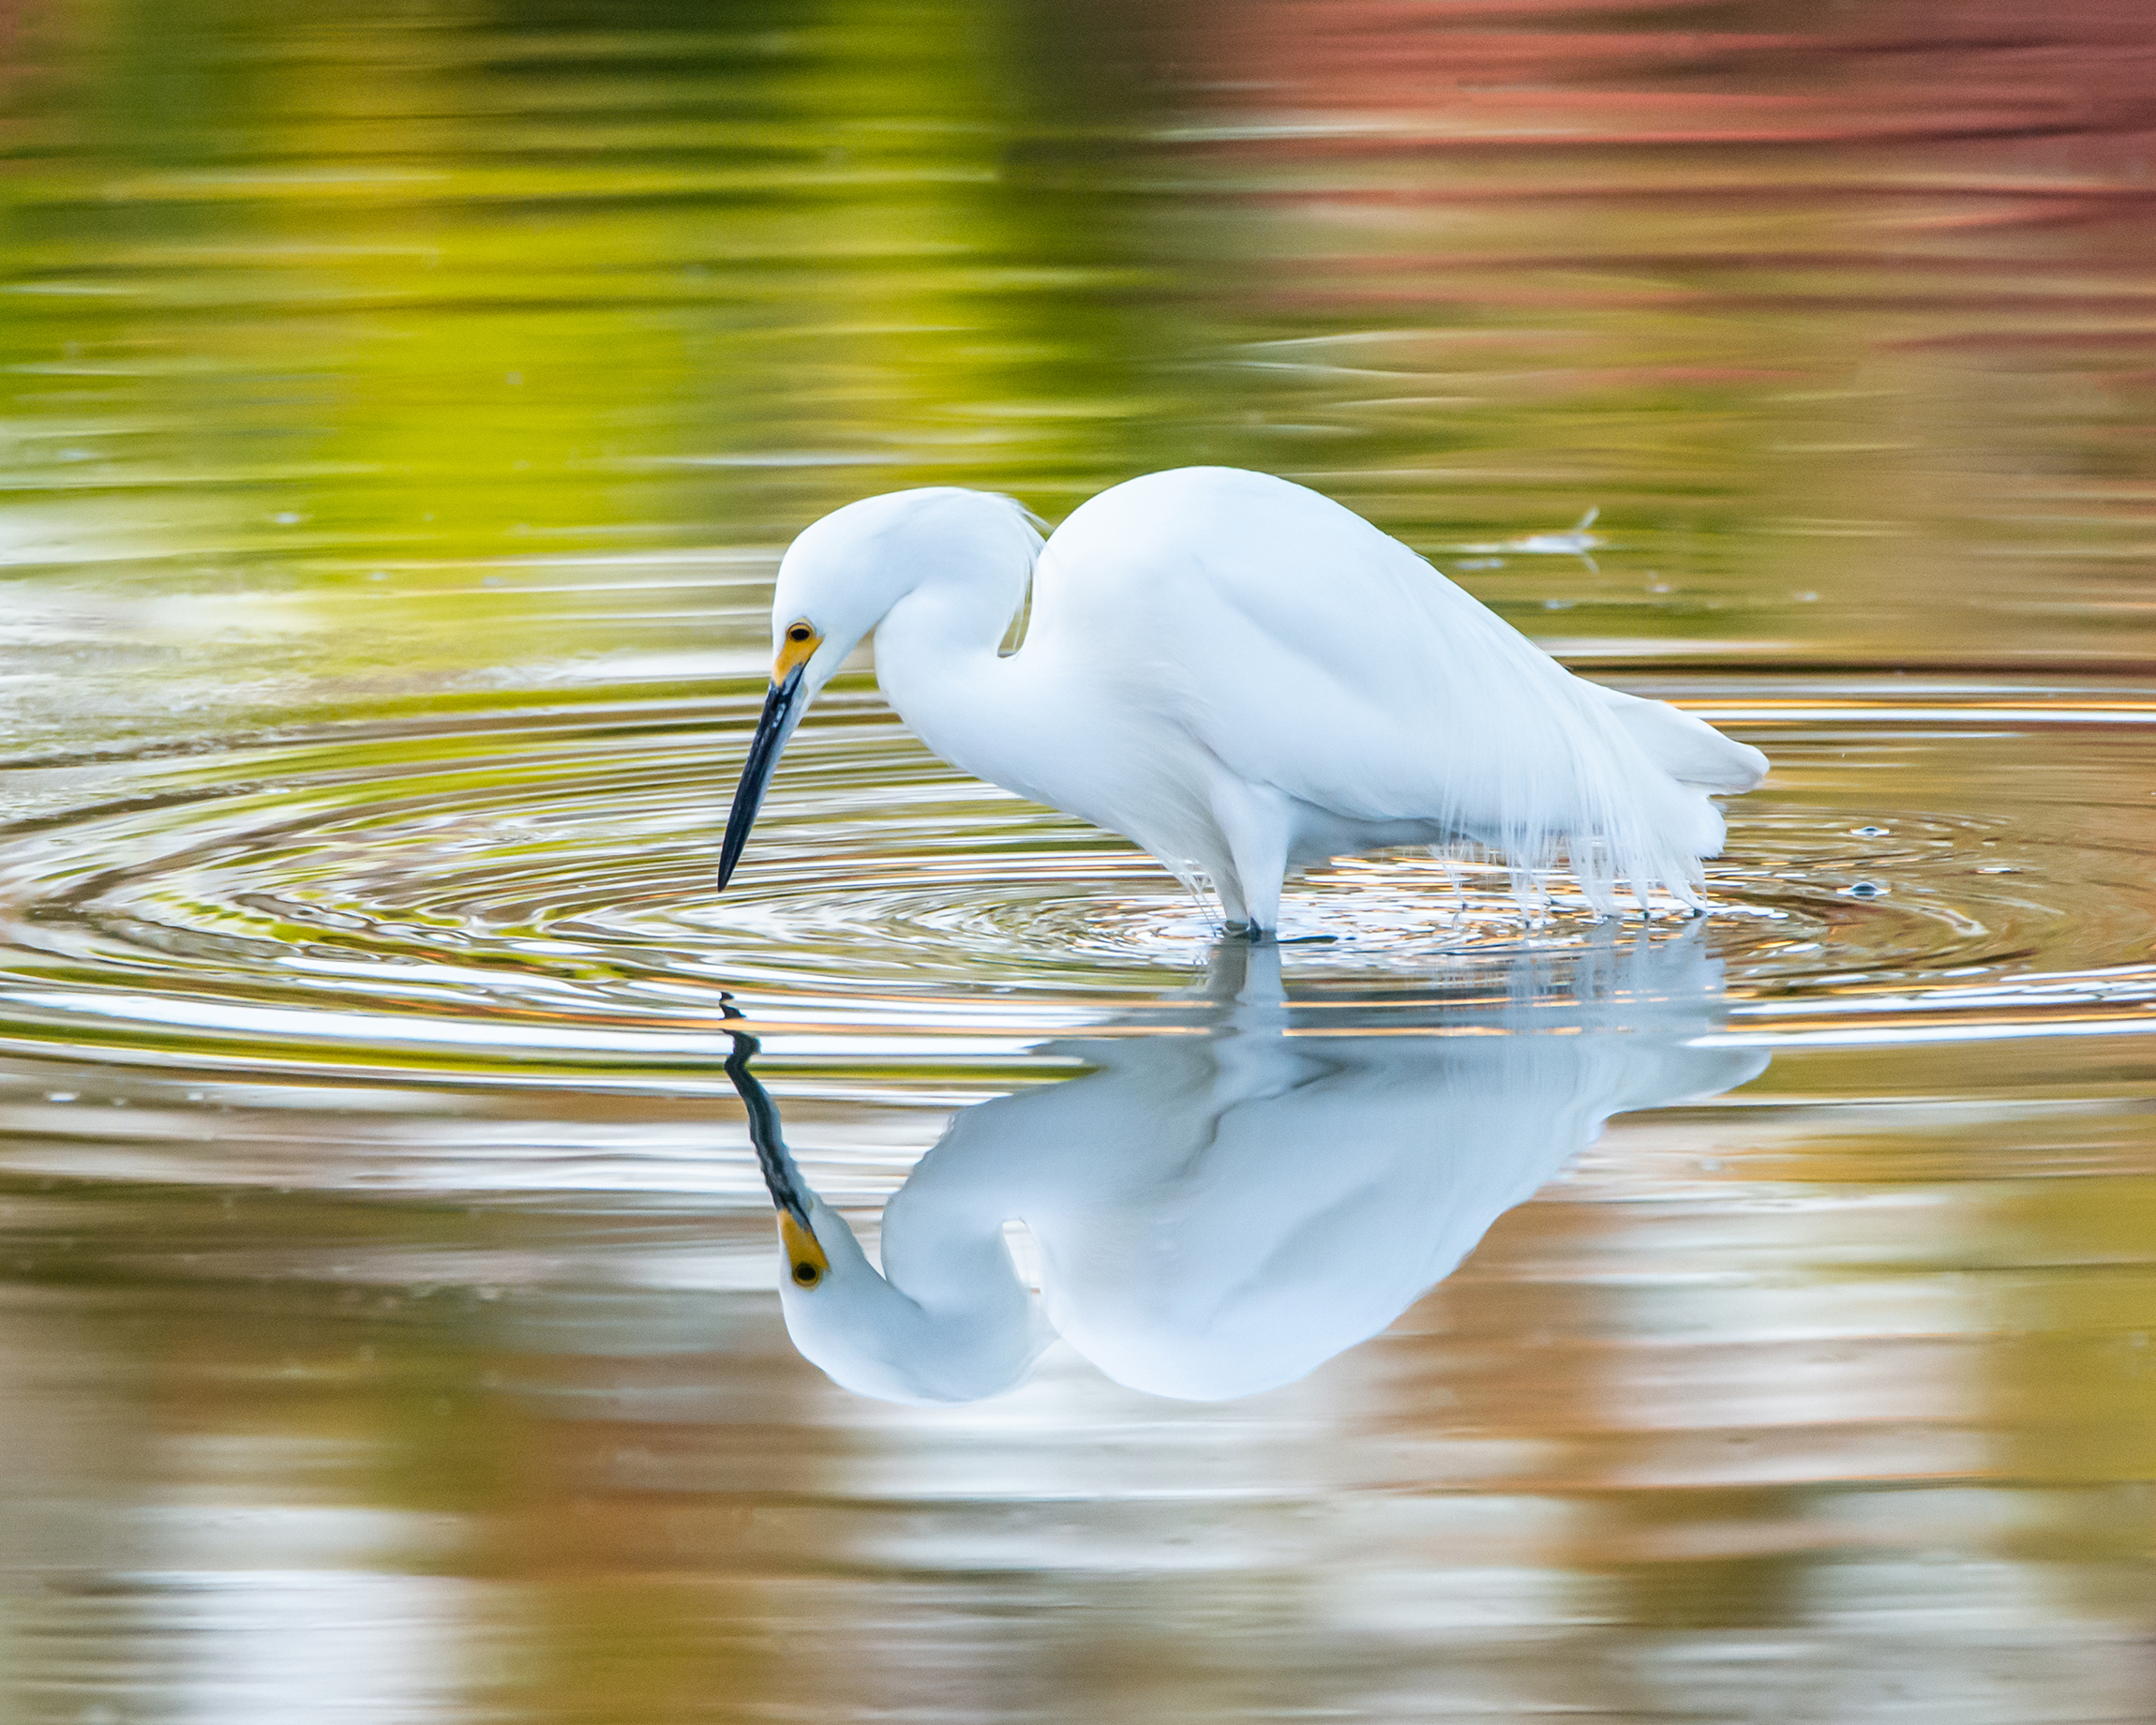 #egret, #greategret, #mirror, #reflection, #colors, #ripples, #symmetry, #narcissus, #greekmythology, #naplesflorida, #naples, #naturephotography, #morninglight, #texture